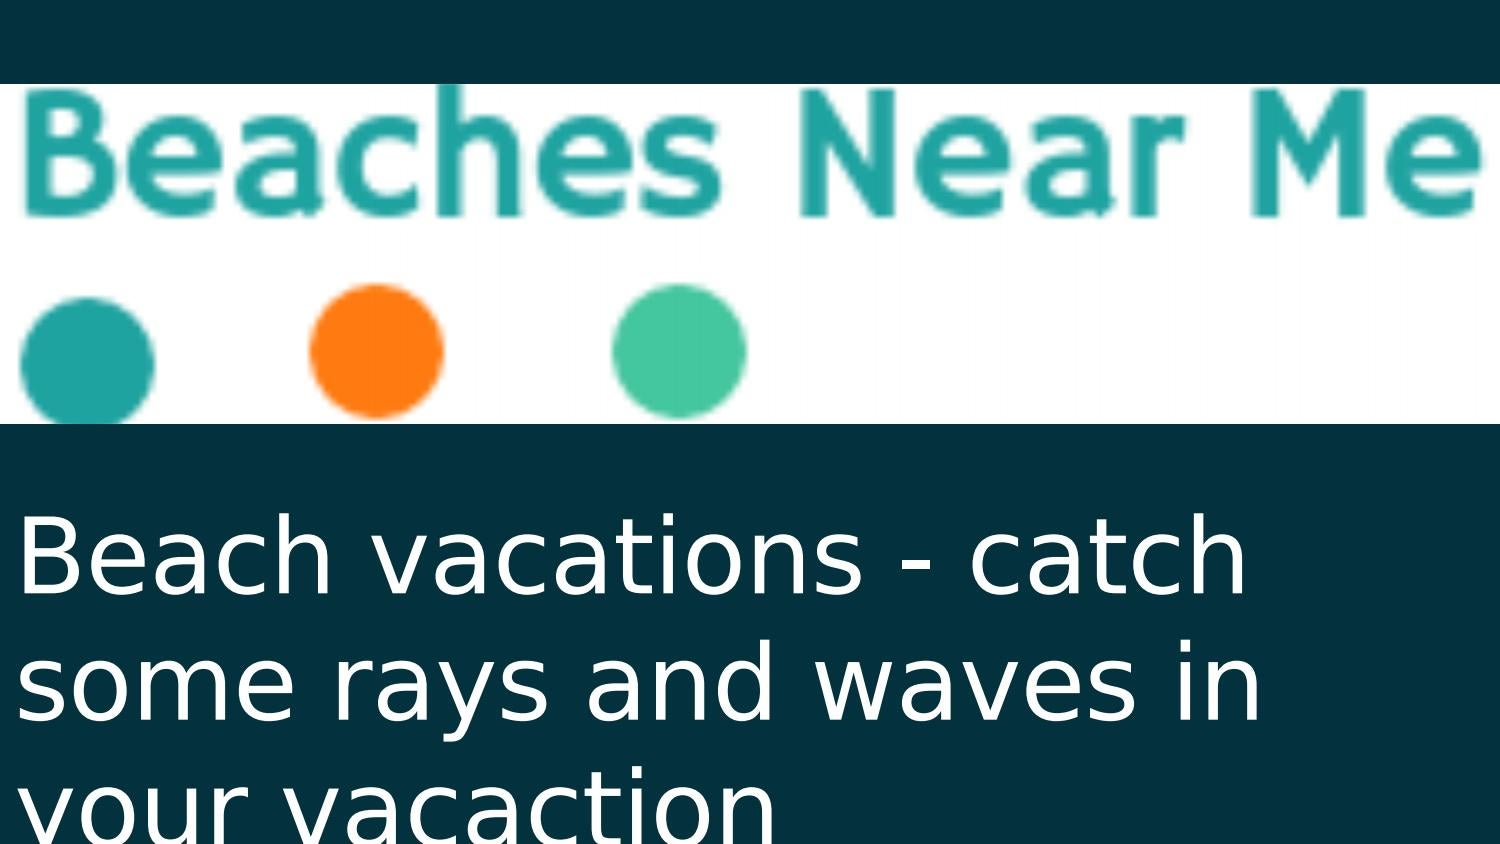 Beach Vacations Catch Some Rays And Waves In Your Vacation By Beachesnearme Issuu